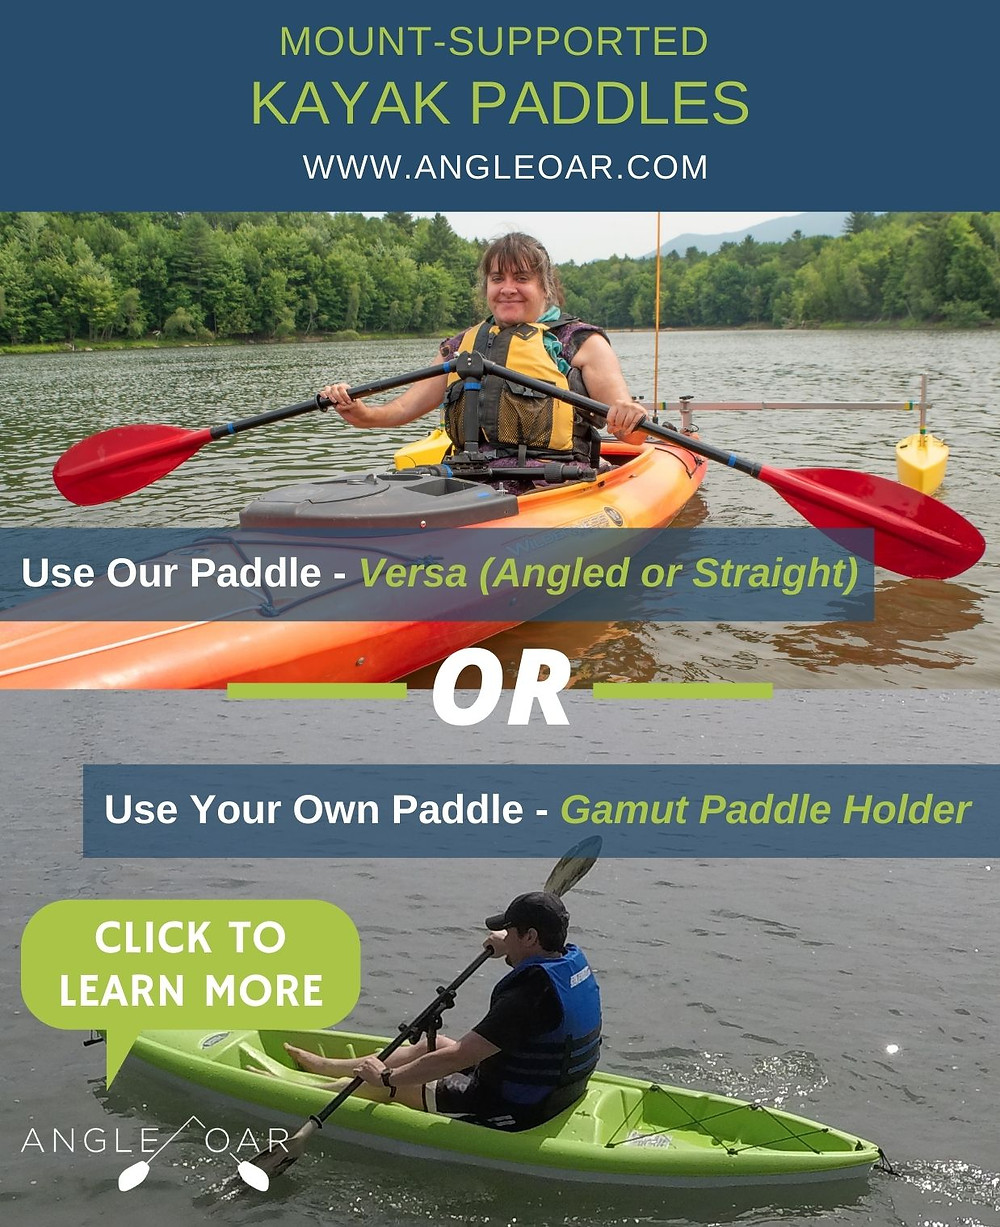 accessible kayaking